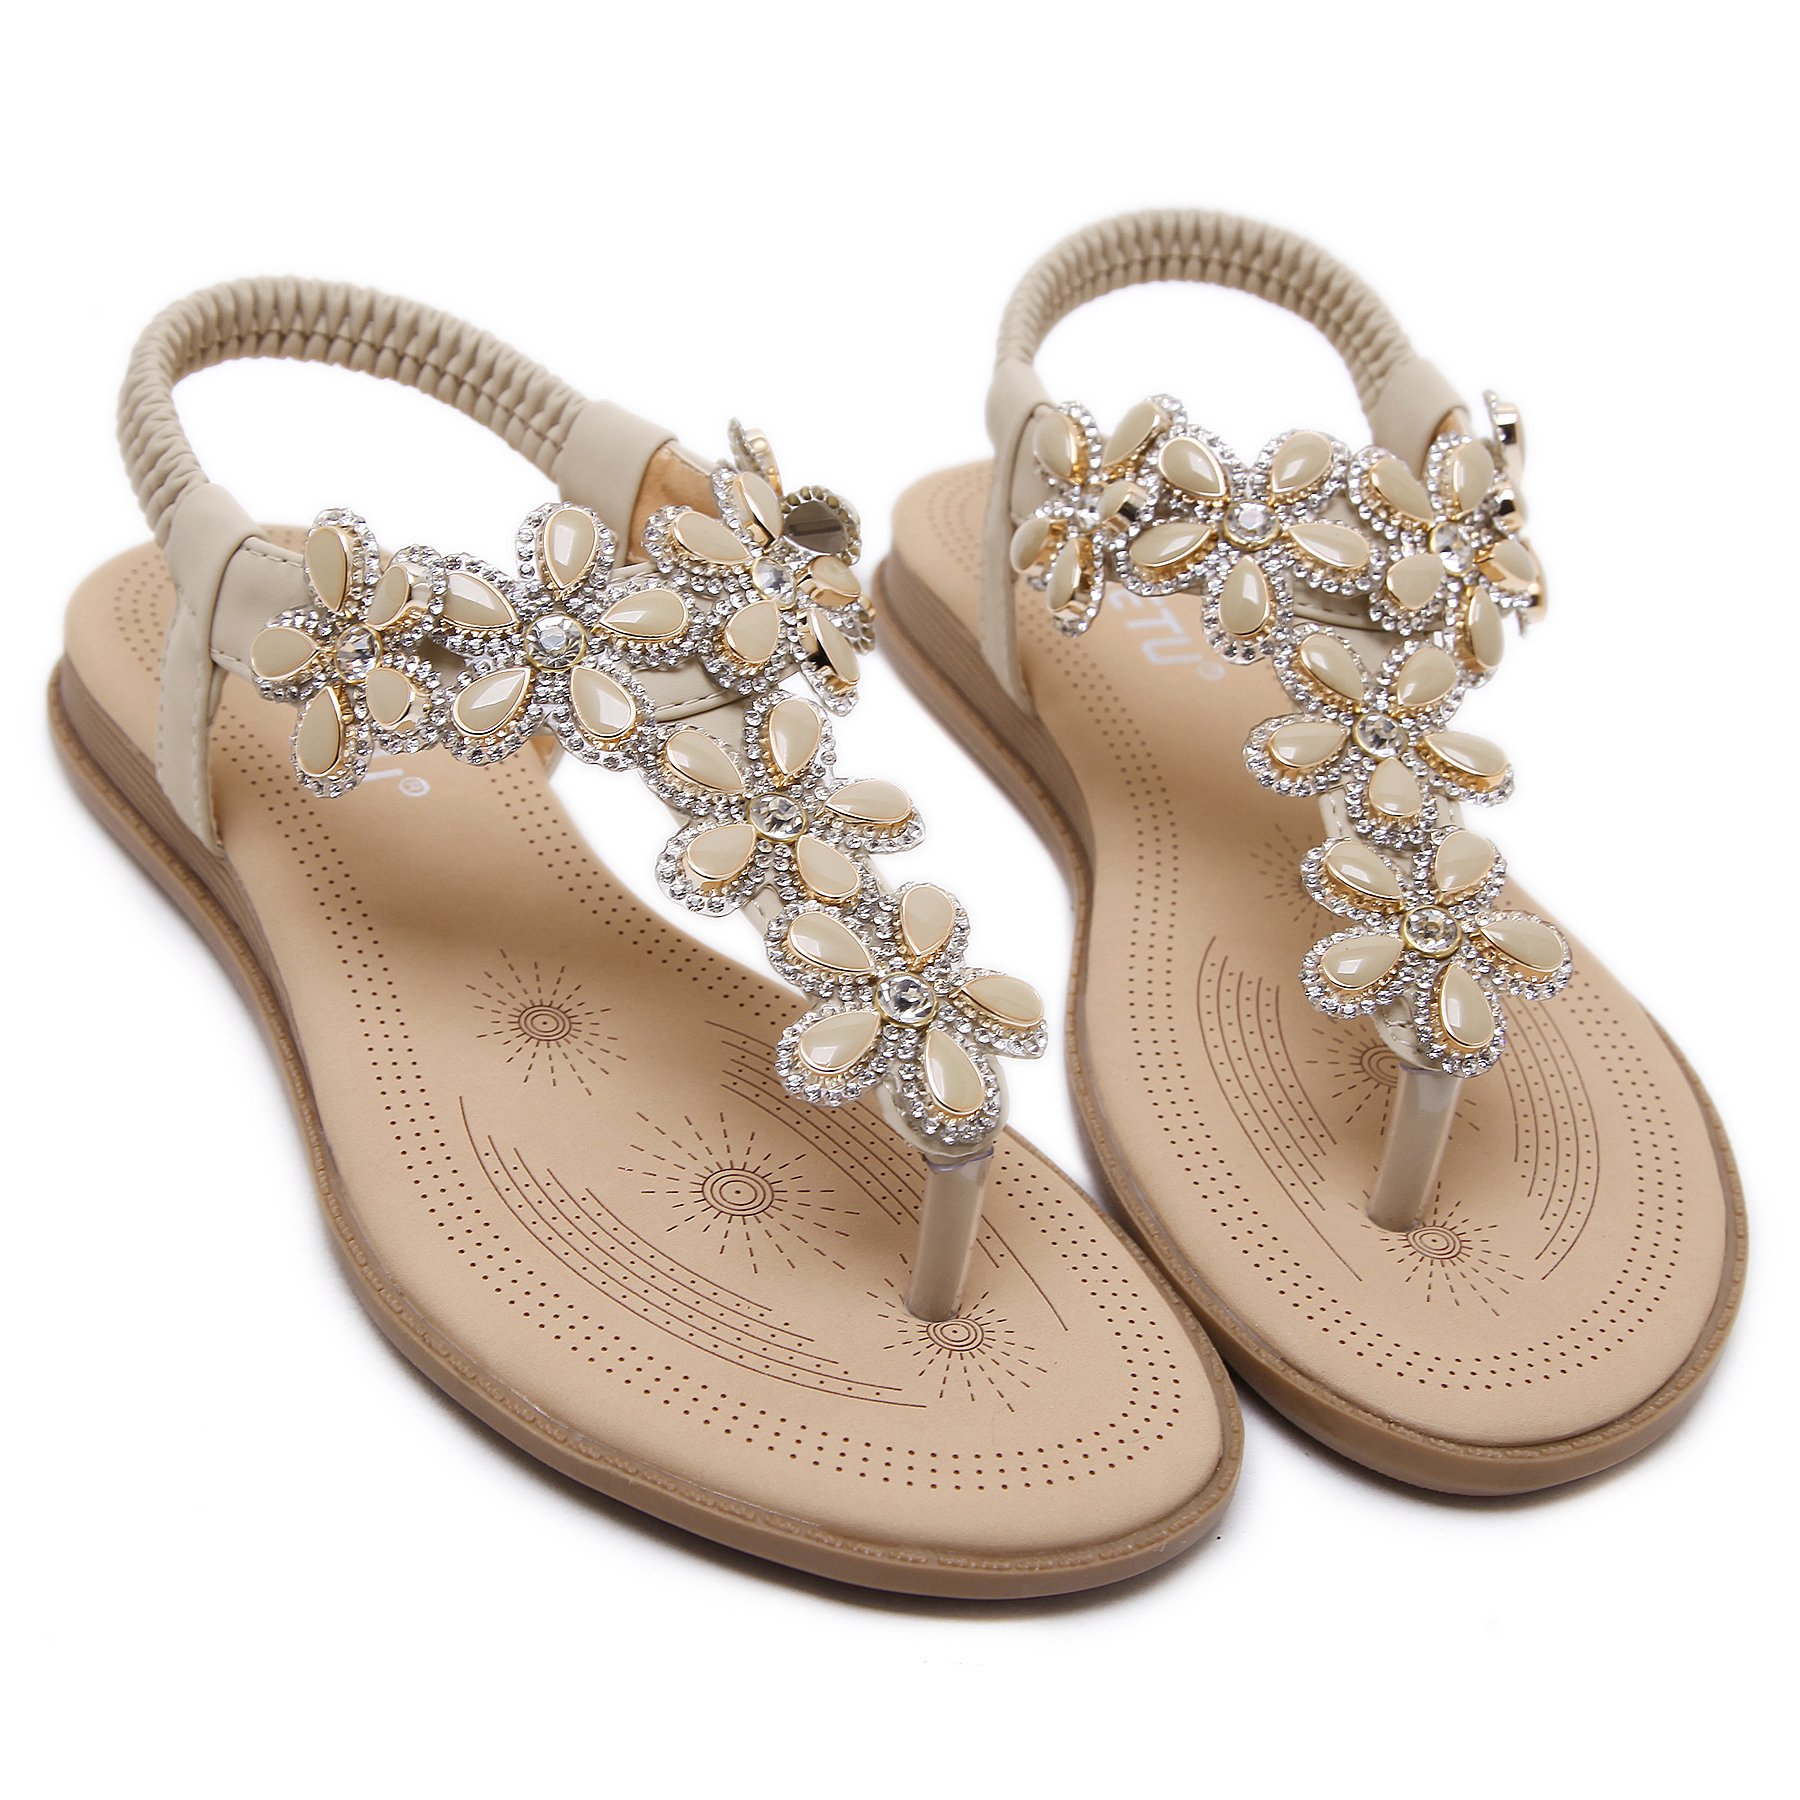 Memorygou Women Flat Sandals Bohemian Style Rhinestone Flower Beaded Strap Gladiator T-Strap Thong Shoes Flip Flops Beige US 4.5